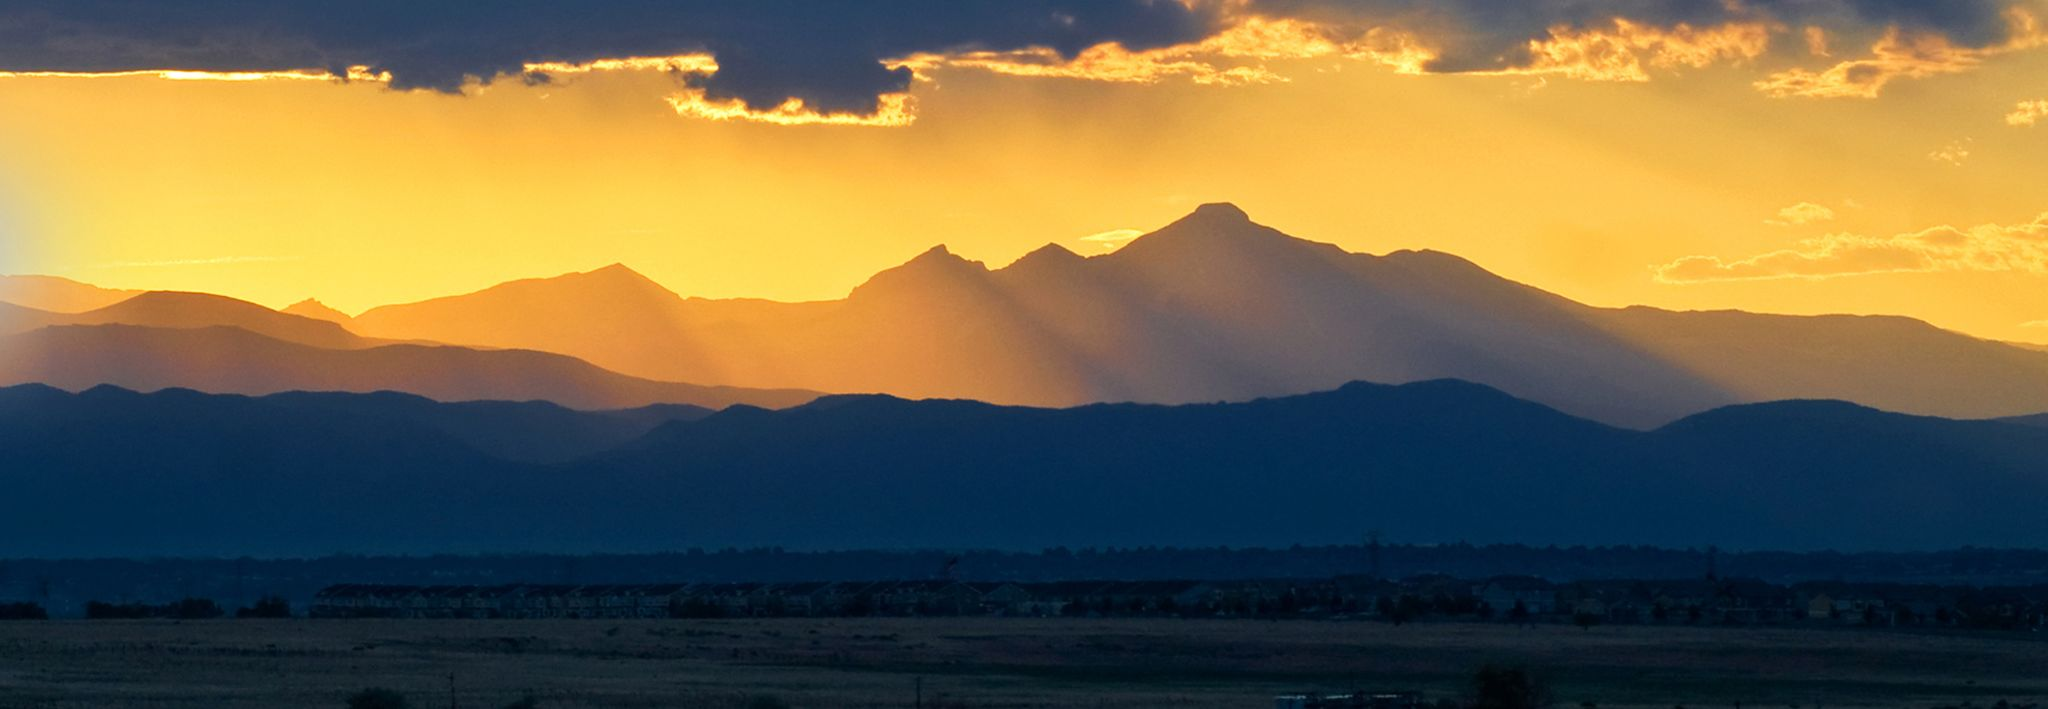 Front range mountains with gold sunlight shining down on it.